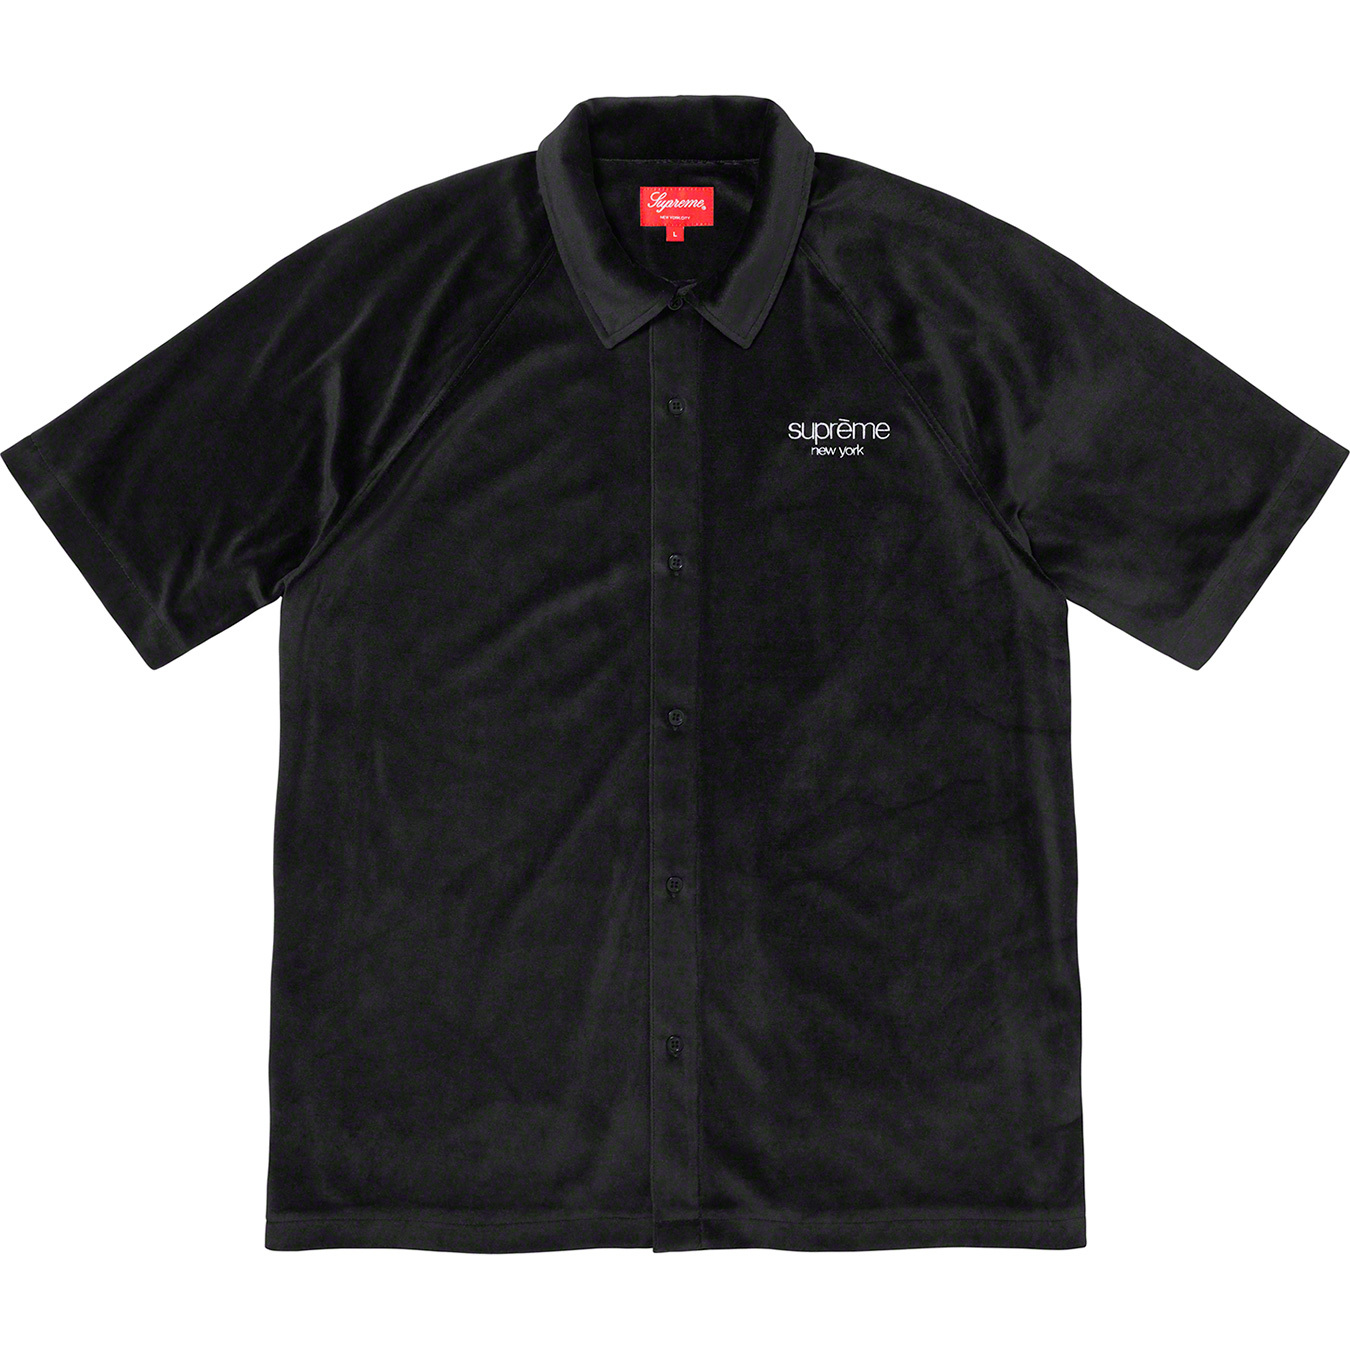 supreme-19aw-19fw-fall-winter-velour-s-s-shirt